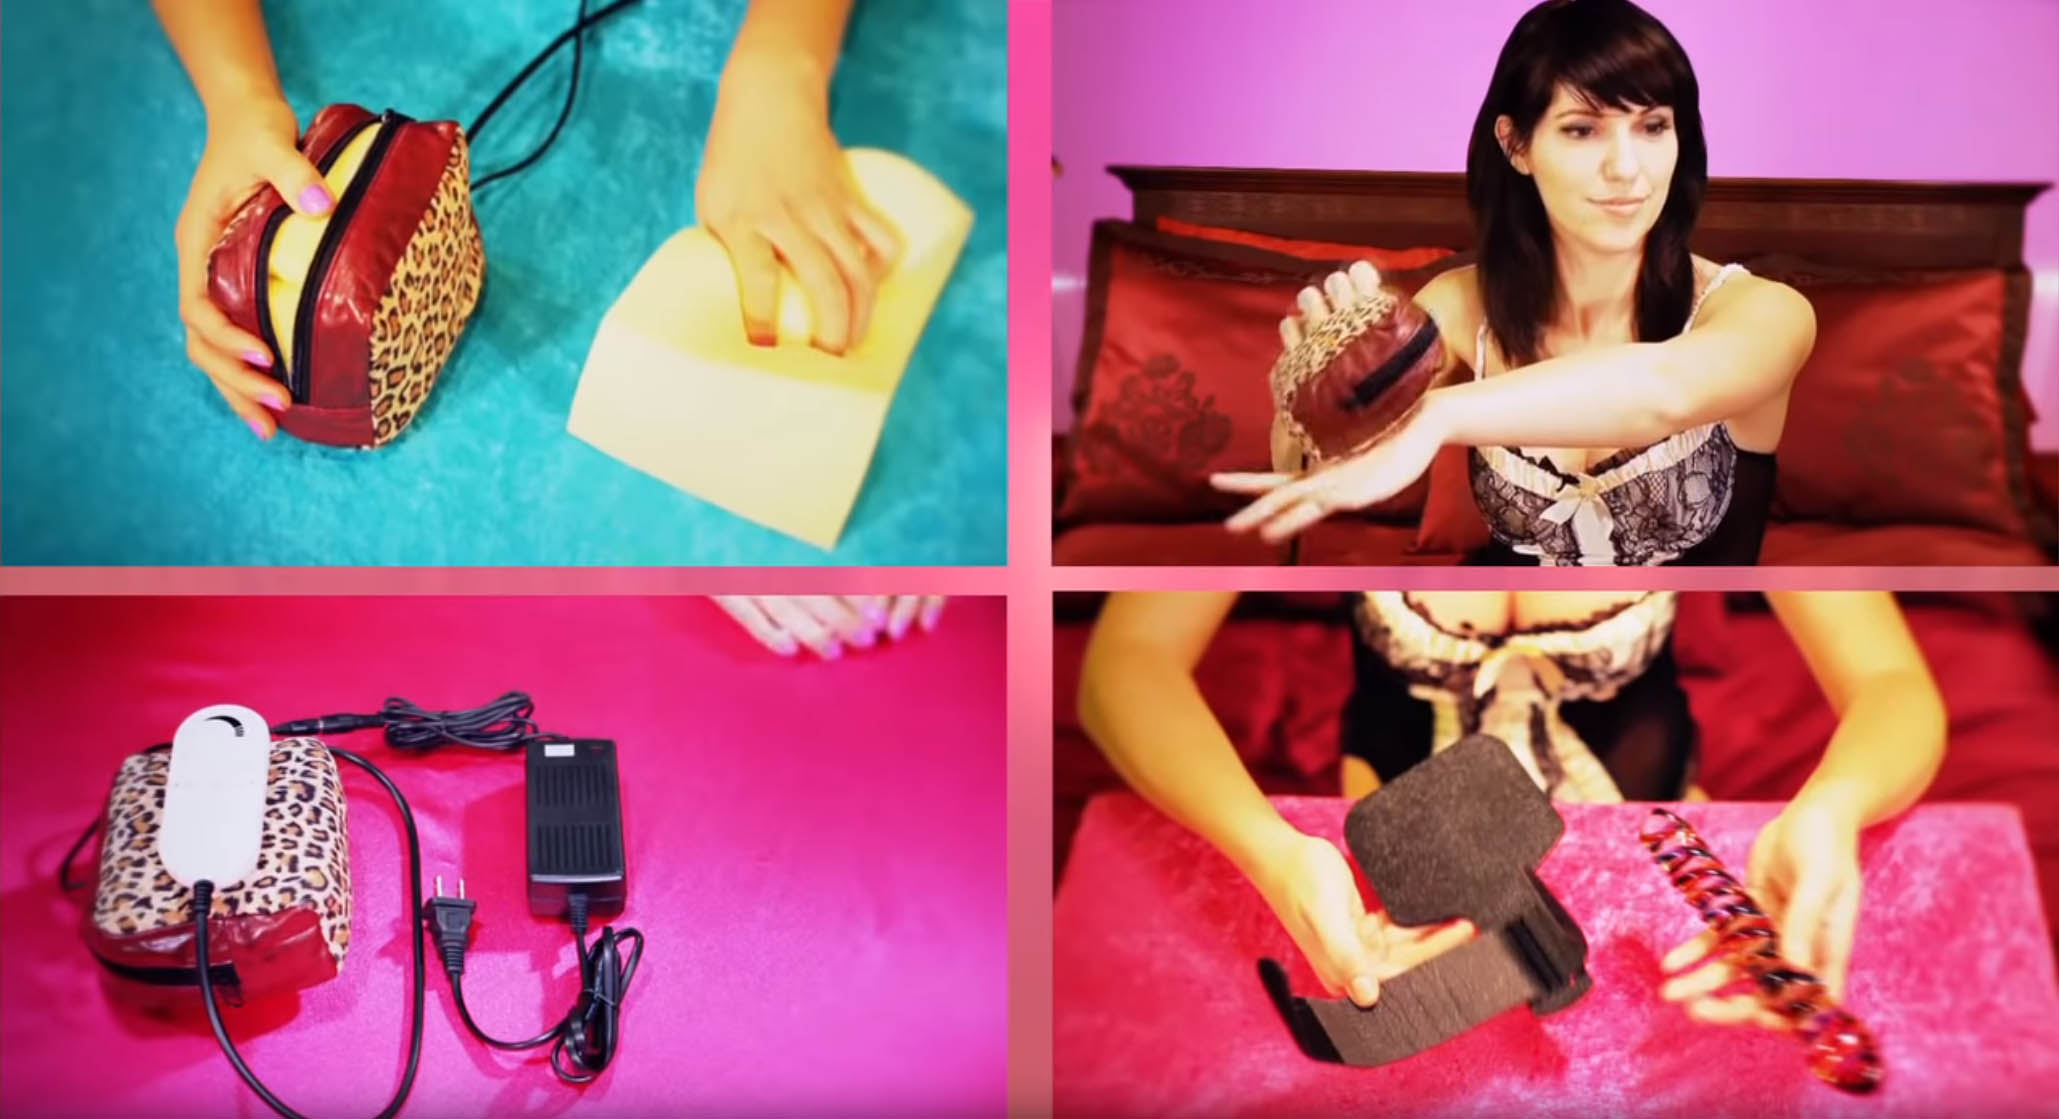 Various shots from the video showing how the leopard print case is STUFFED WITH FOAM and how you can totally strap a glass dildo to it.